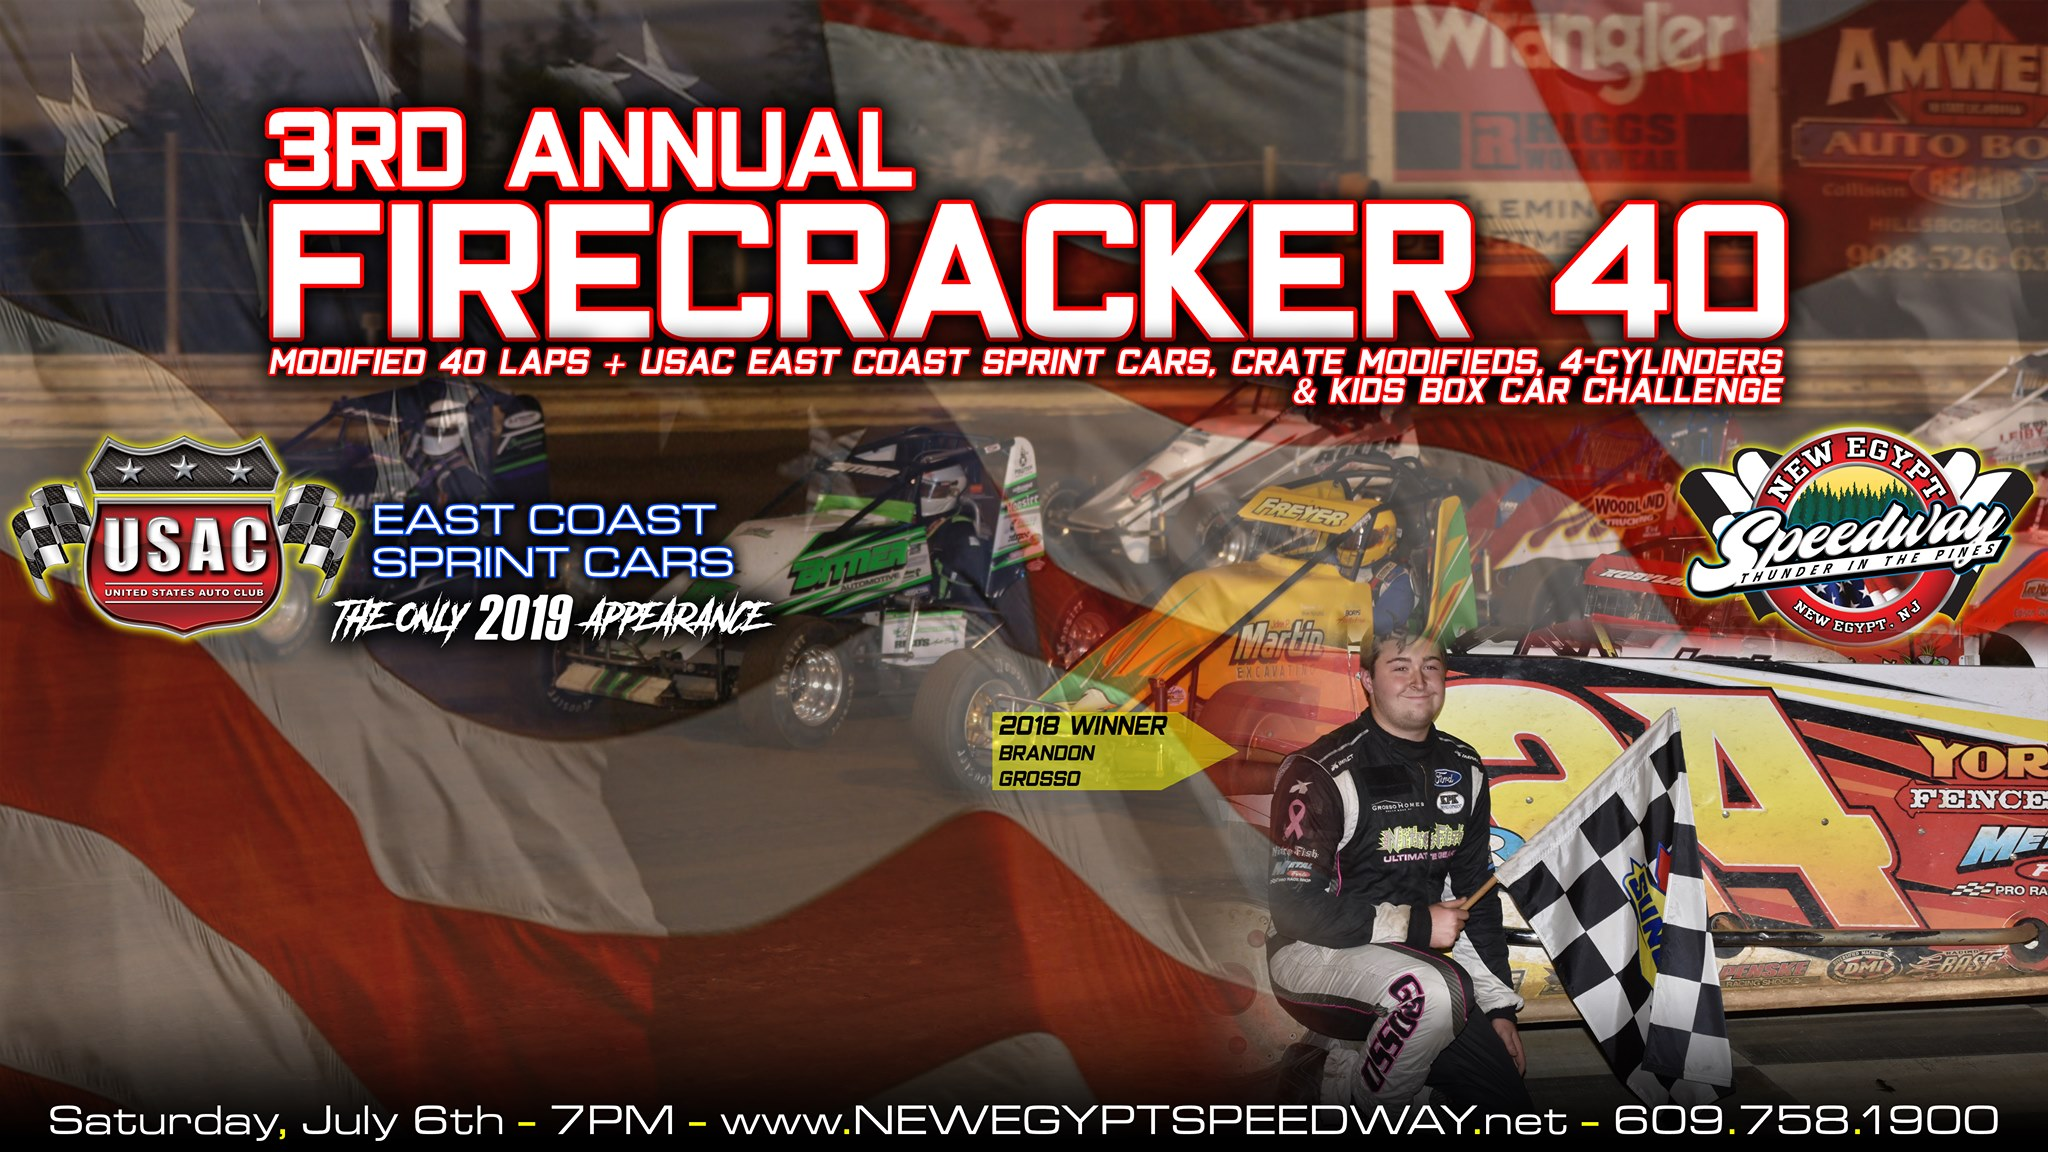 MODIFIEDS ARE SET TO LIGHT IT UP AT NEW EGYPT SPEEDWAY'S FIRECRACKER 40